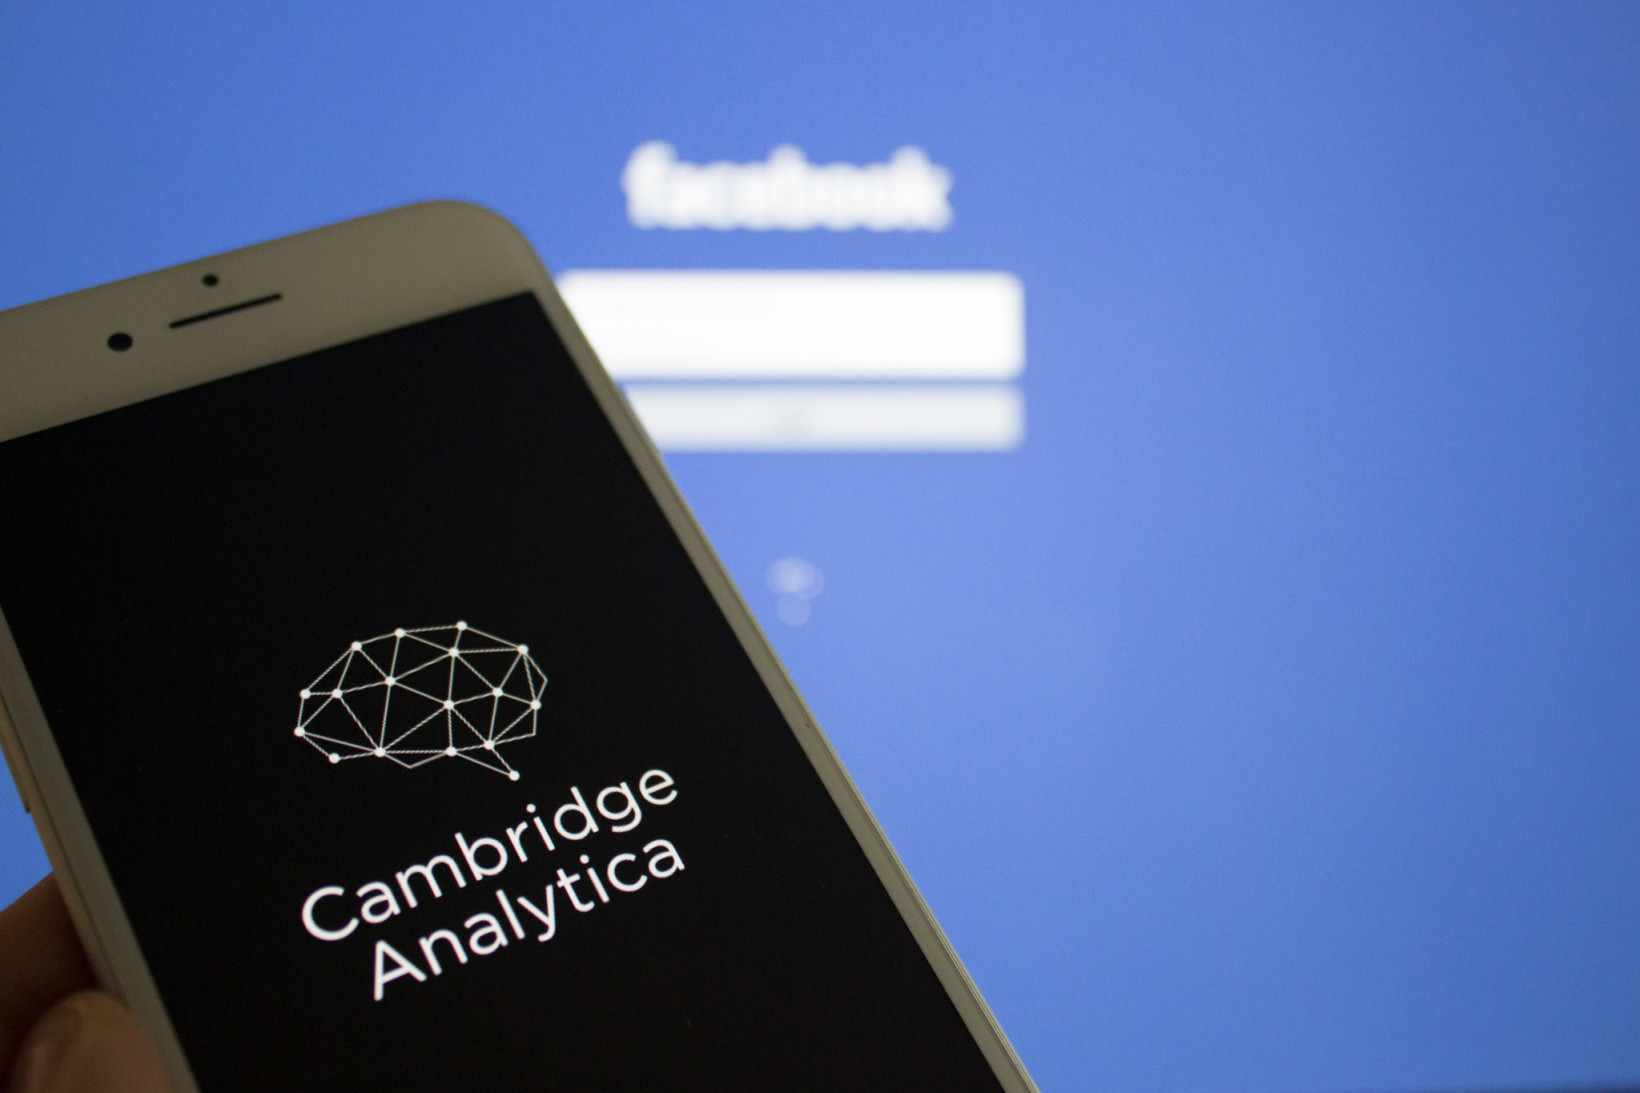 Honey traps and bribery: Ex-Cambridge Analytica CEO slapped with 7-year directorship ban